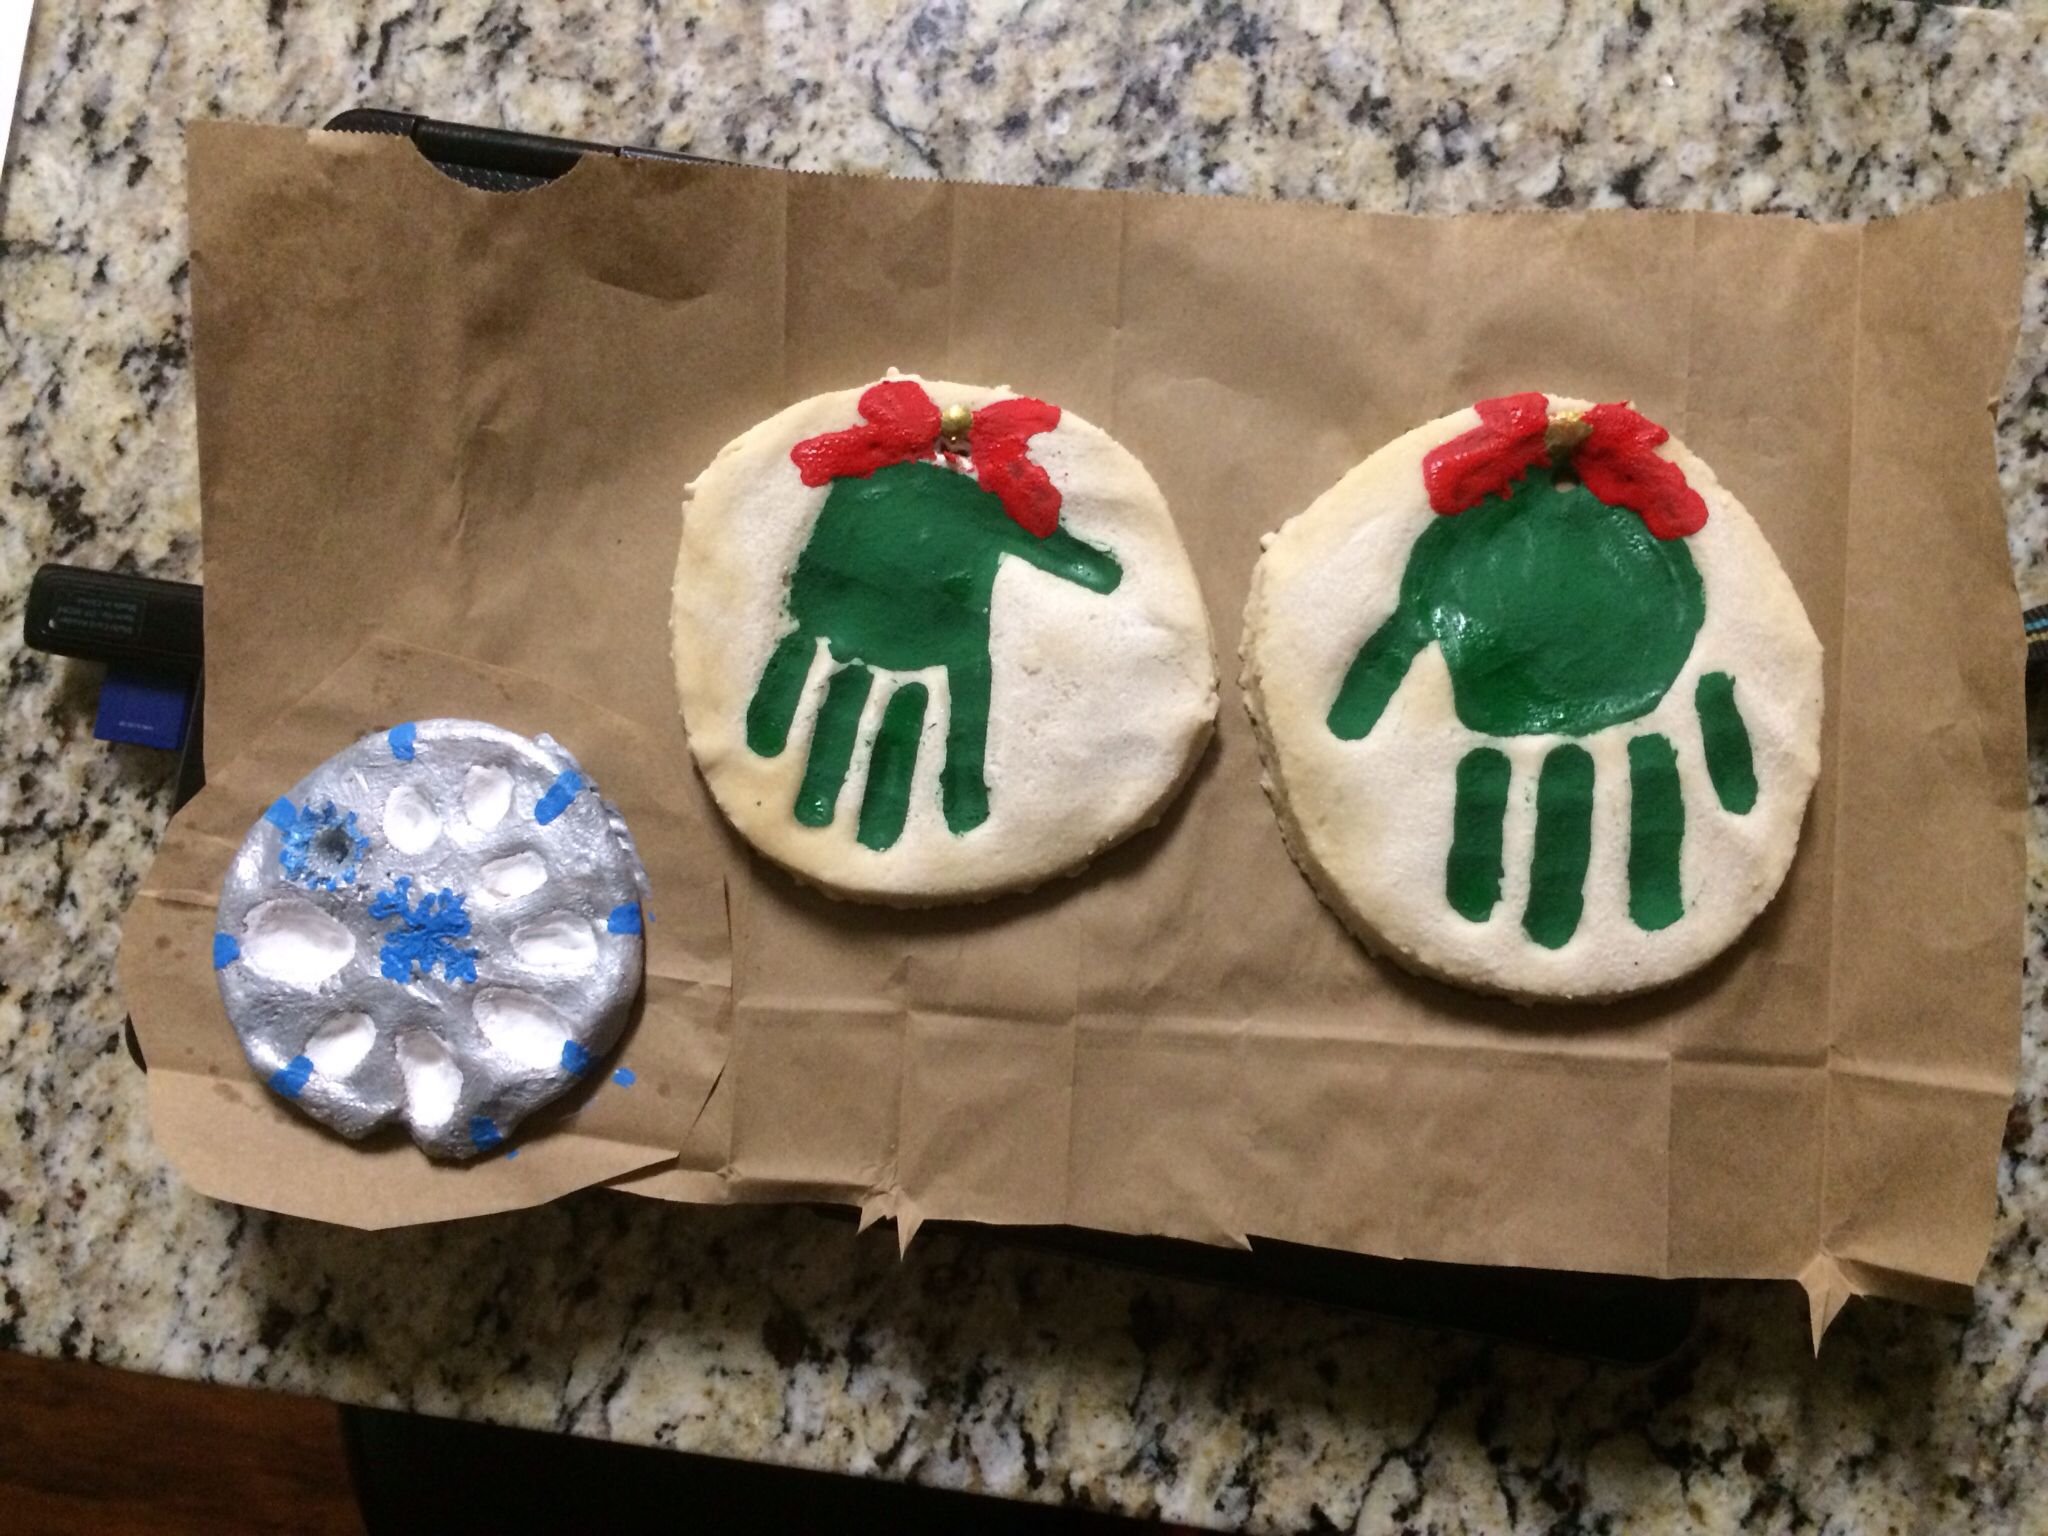 Christmas Craft Ideas For 2 Year Olds Part - 15: Our Salt Dough Ornaments :) I Really Enjoyed Making These For The Girls  Surprisingly Our. Kids Christmas CraftsChristmas ...